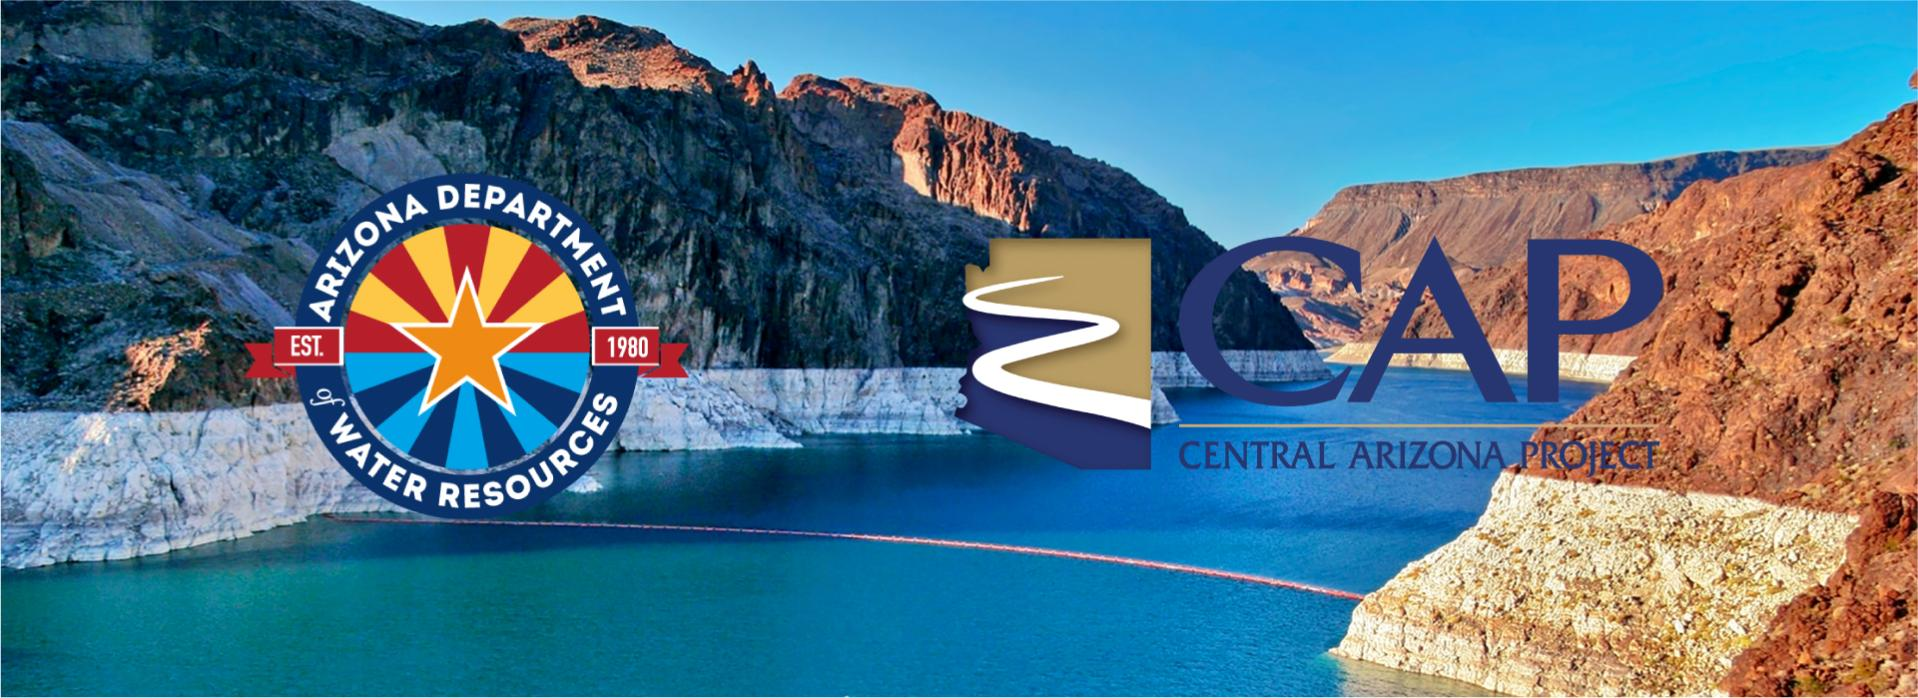 AZDCP Lake Mead